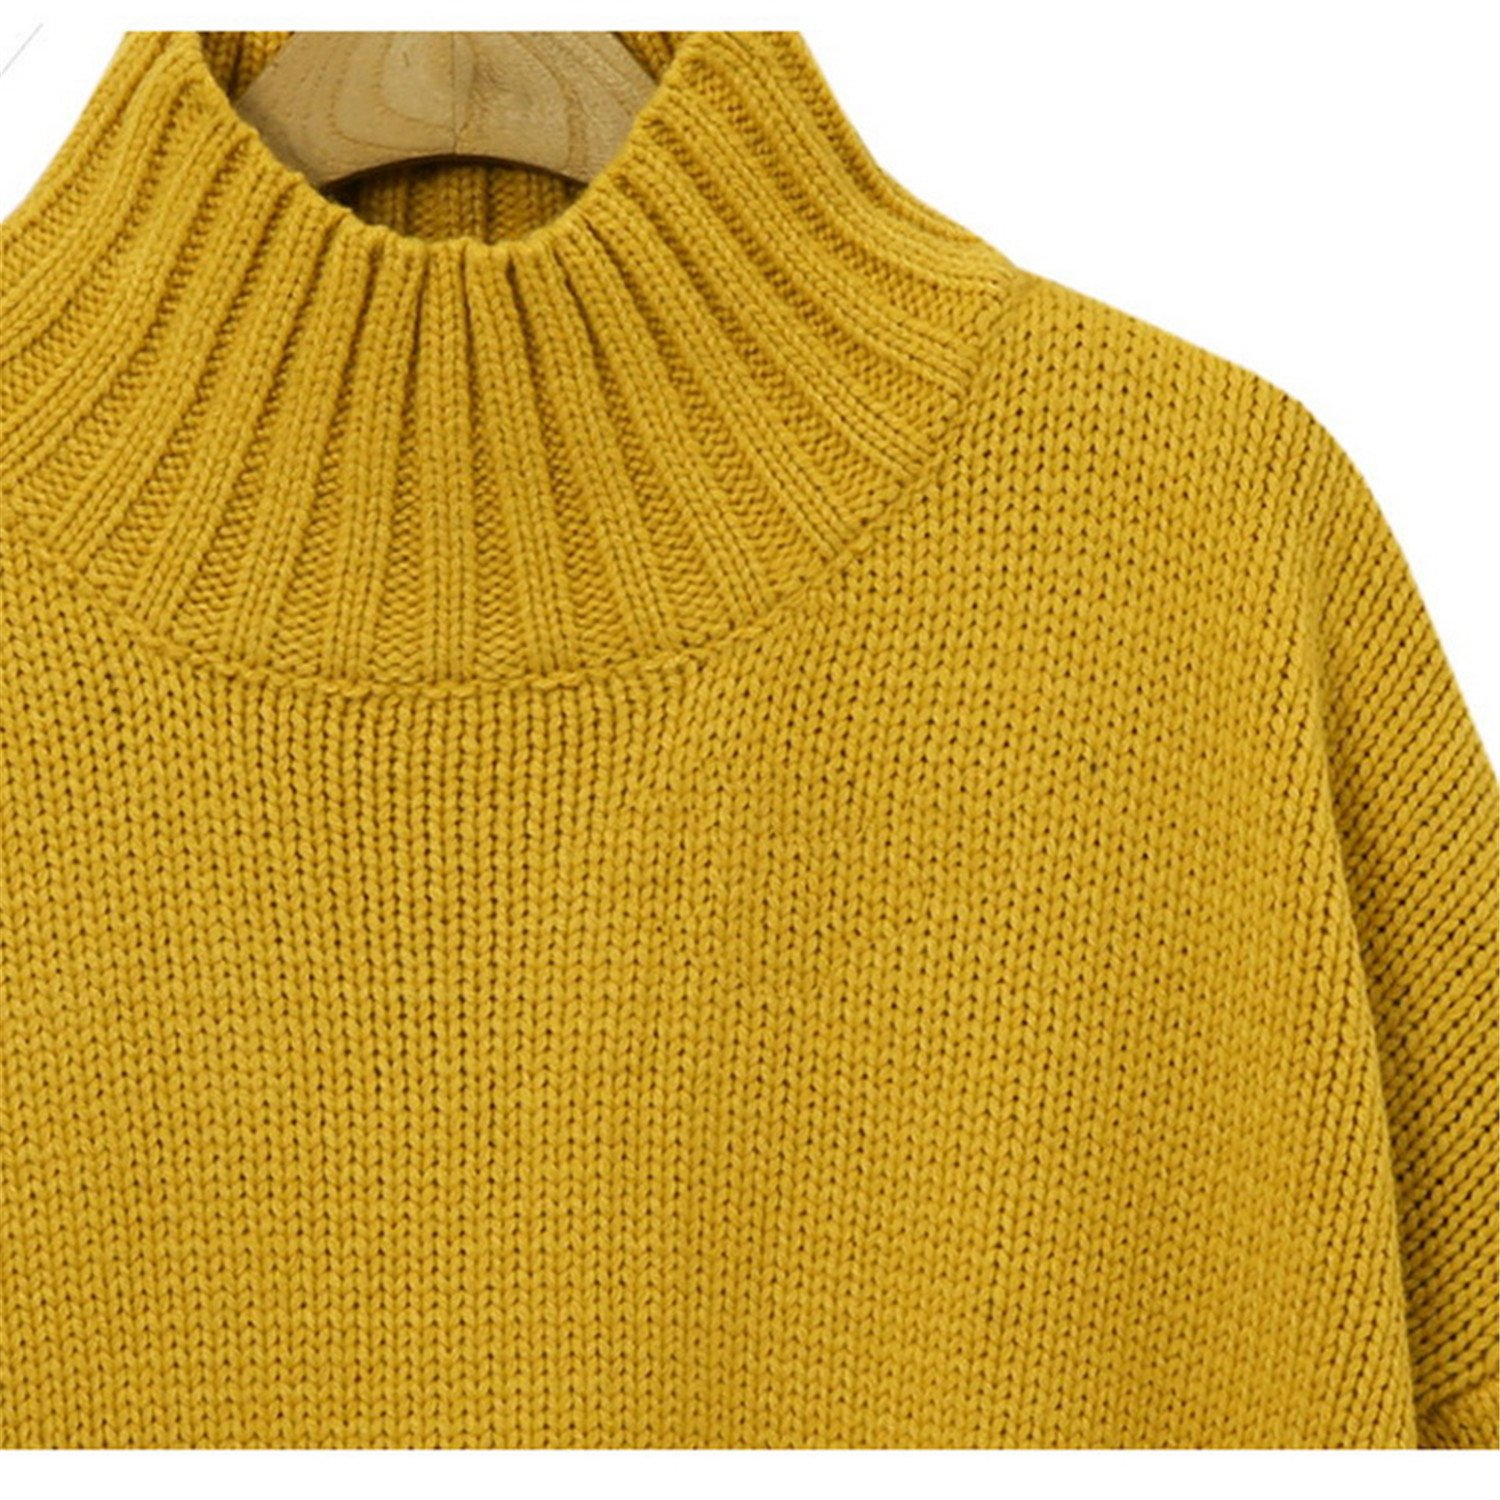 Plus Size Yellow Sweater Girls Xl 3Xl Woman Pullover Autumn Long Sleeve Tops Sweaters Pullovers